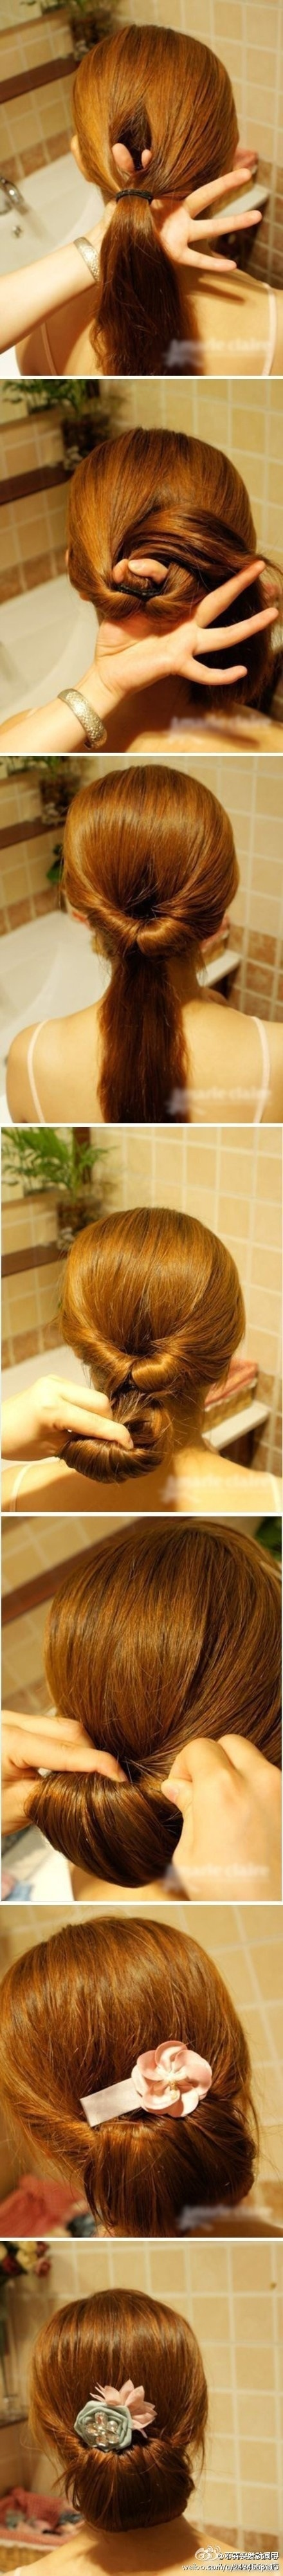 How to make a nice bun ;)